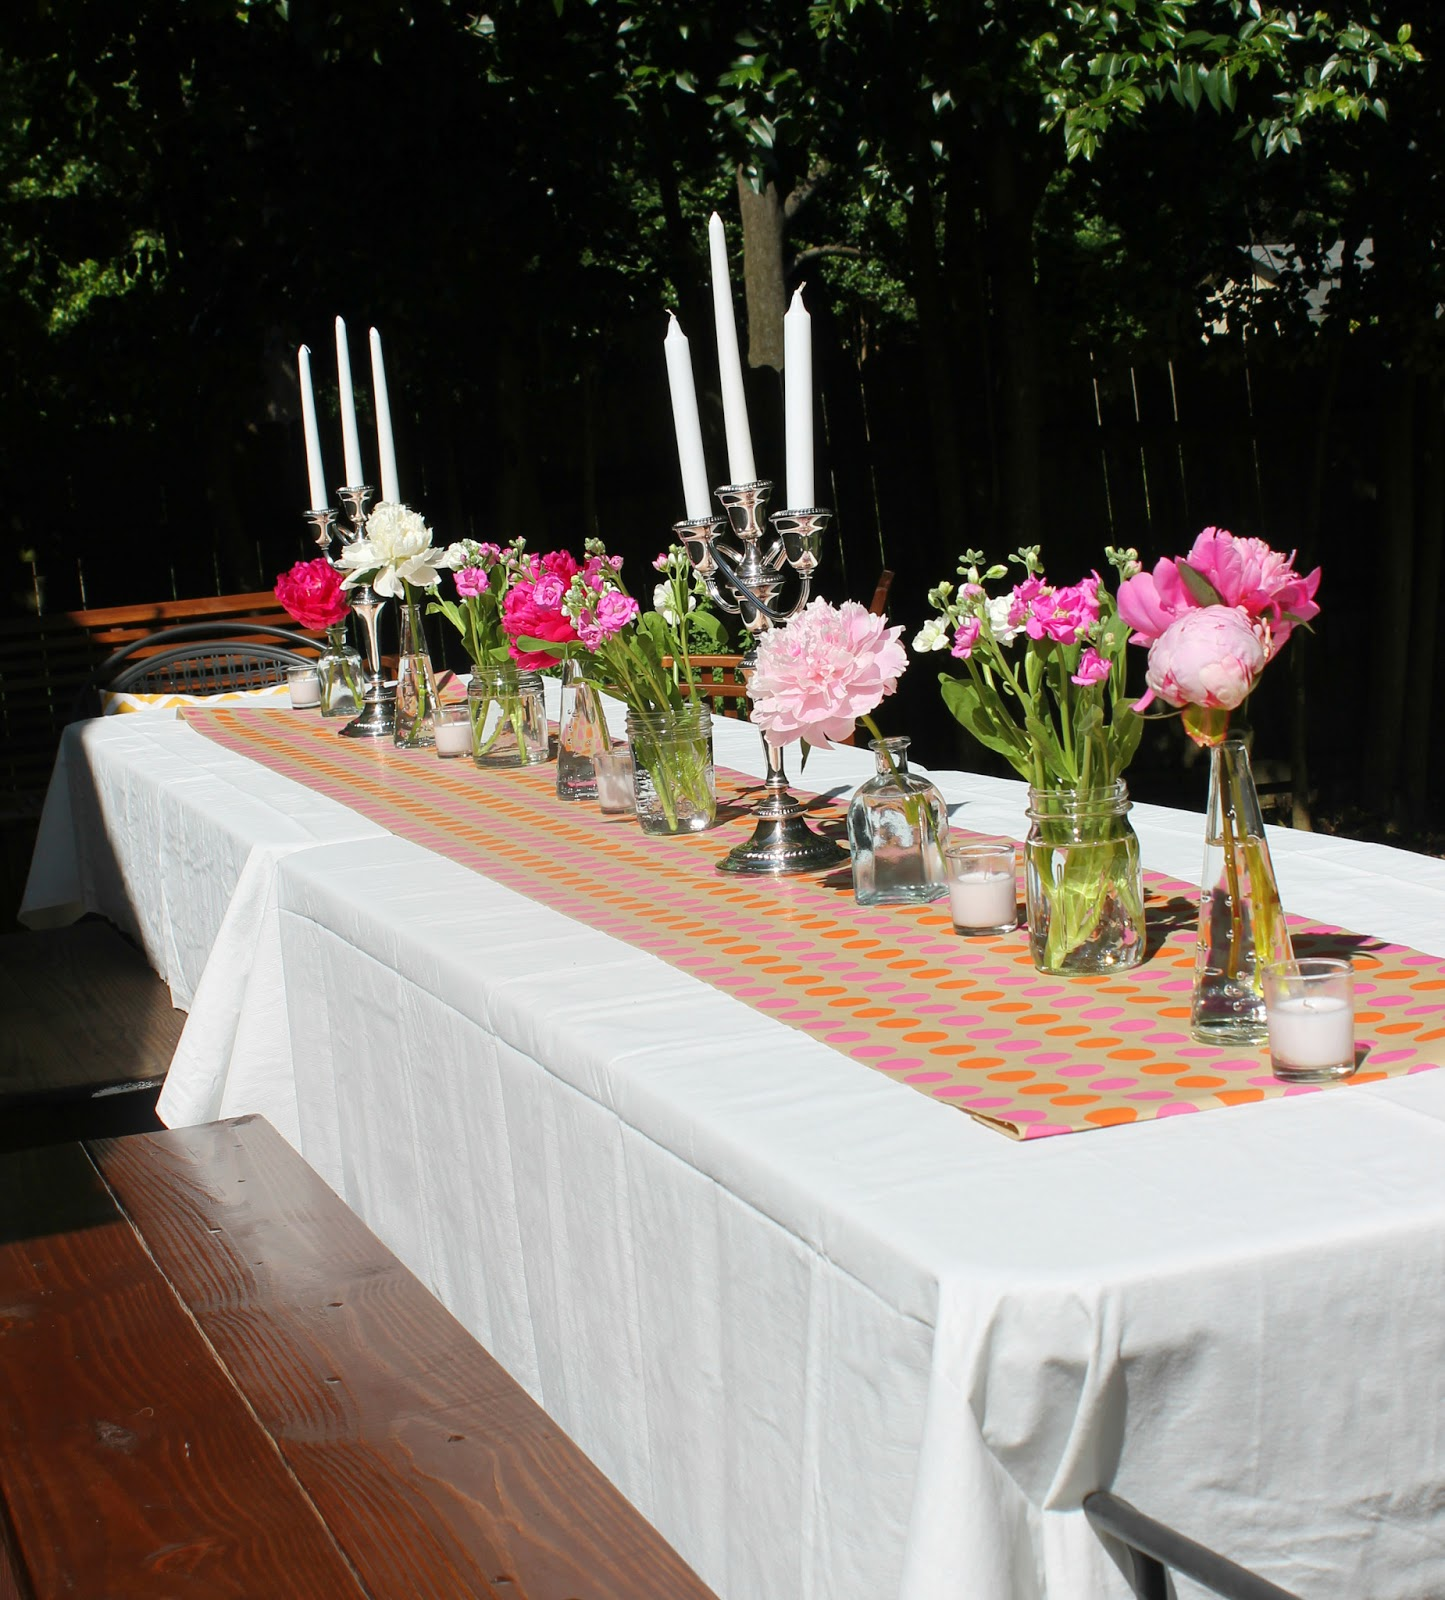 A Backyard Dinner Party